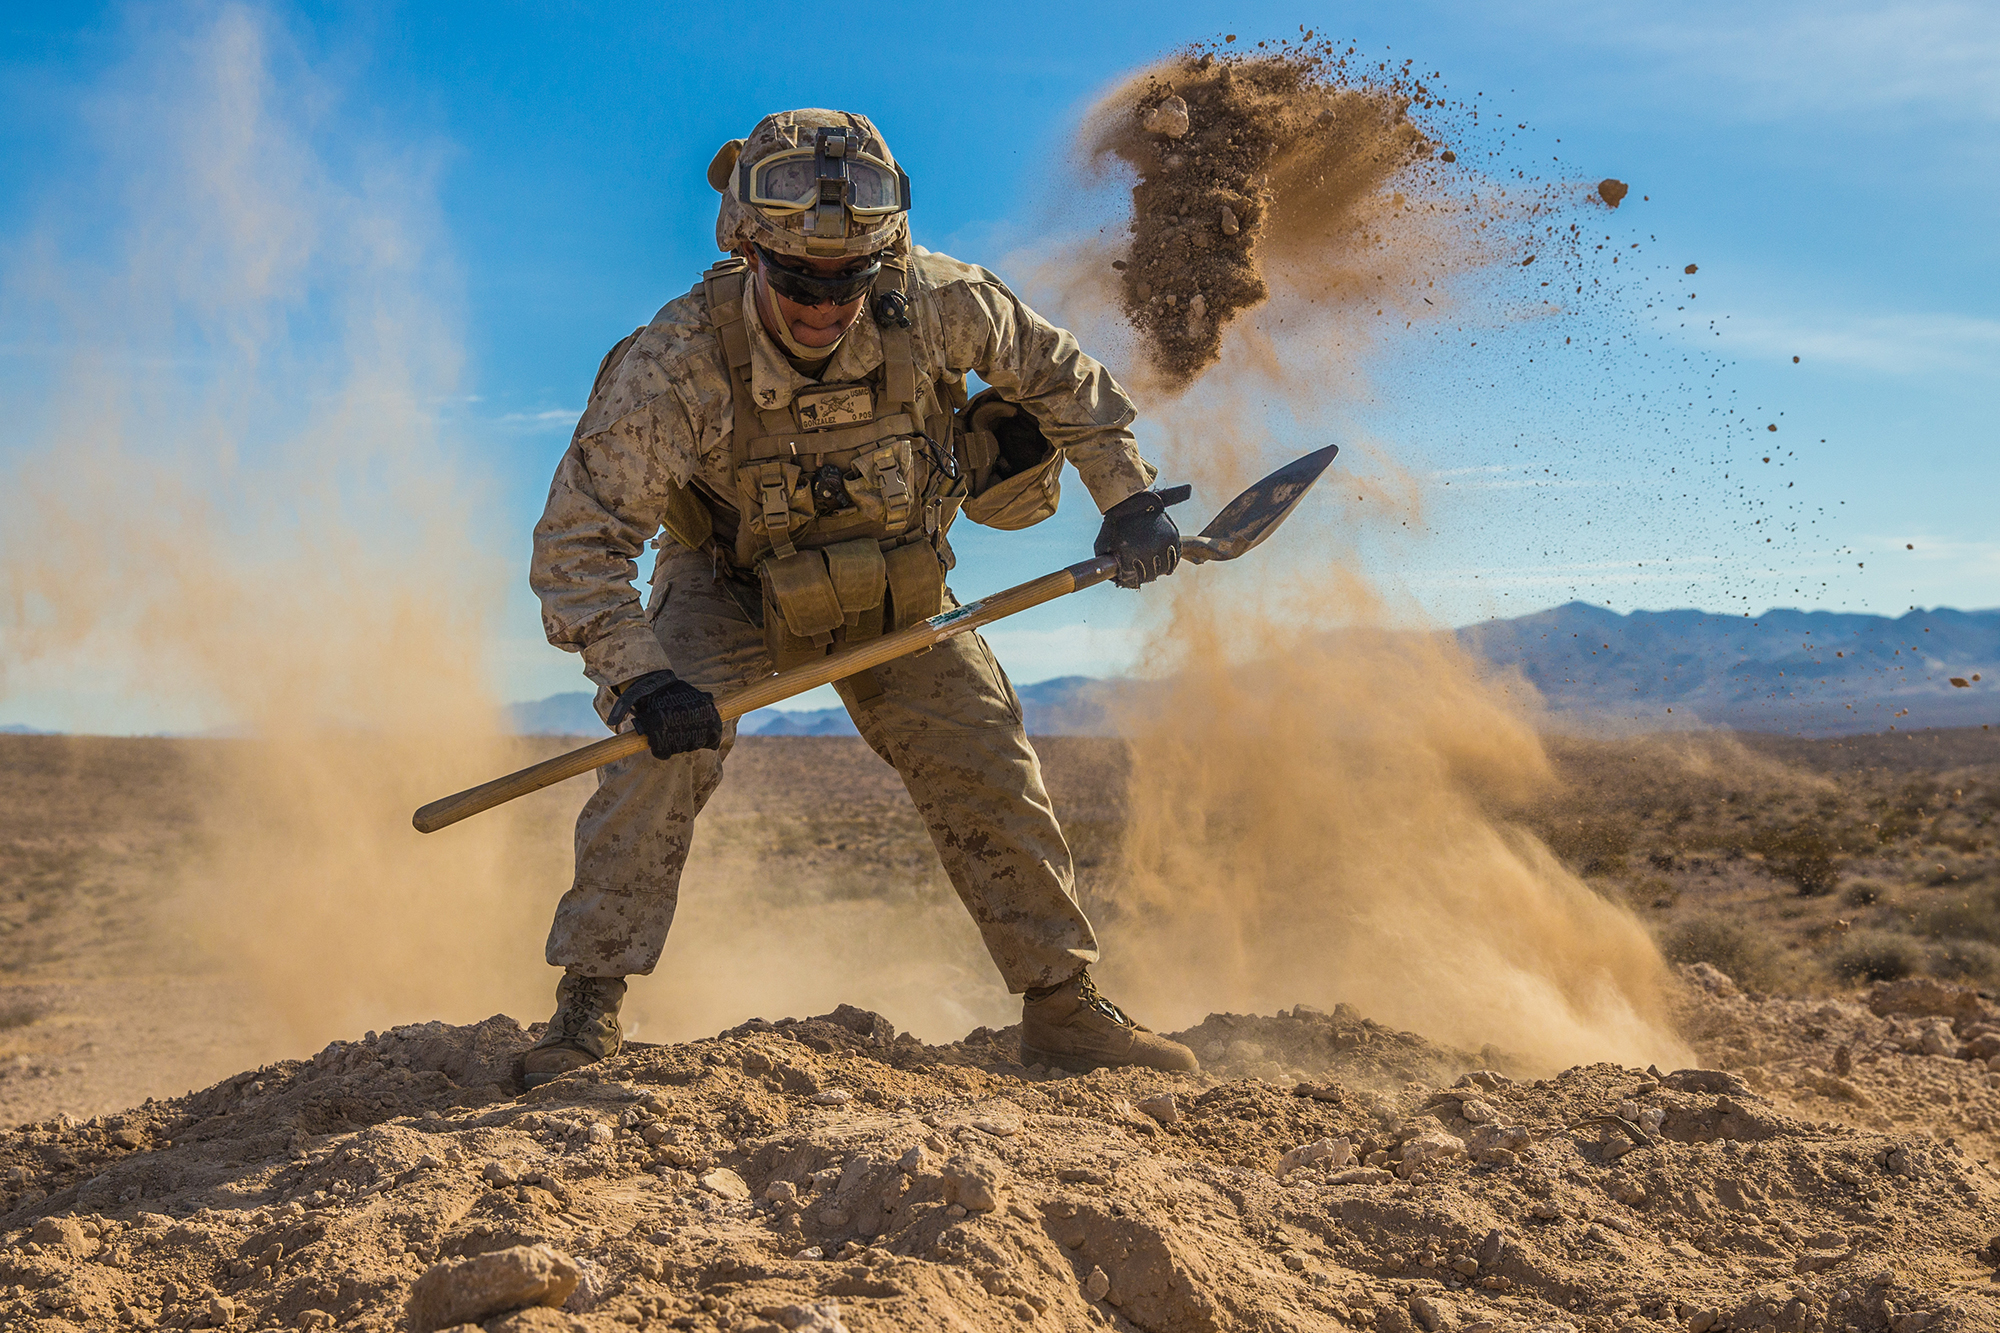 Cpl. Rayfel Gonzalez digs an entrenchment for an M240B machine gun Dec. 11, 2019, during exercise Steel Knight 20 (SK20) on Marine Air-Ground Combat Center, Twentynine Palms, Calif. (Cpl. Sabrina Candiaflores/Marine Corps)